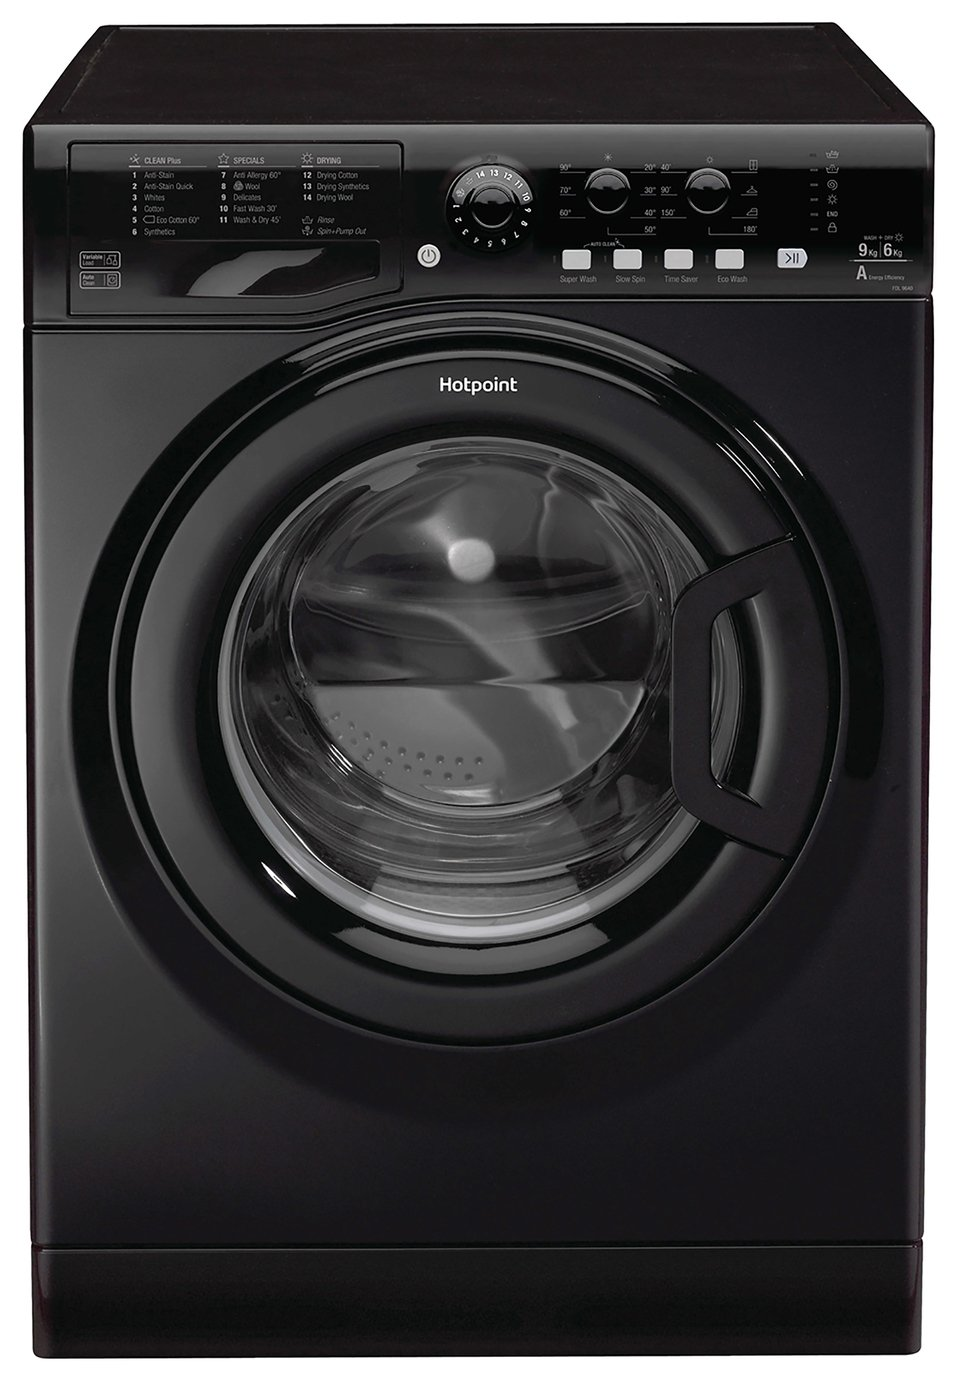 Hotpoint FDL9640KUK 9KG / 6KG 1400 Spin Washer Dryer - Black